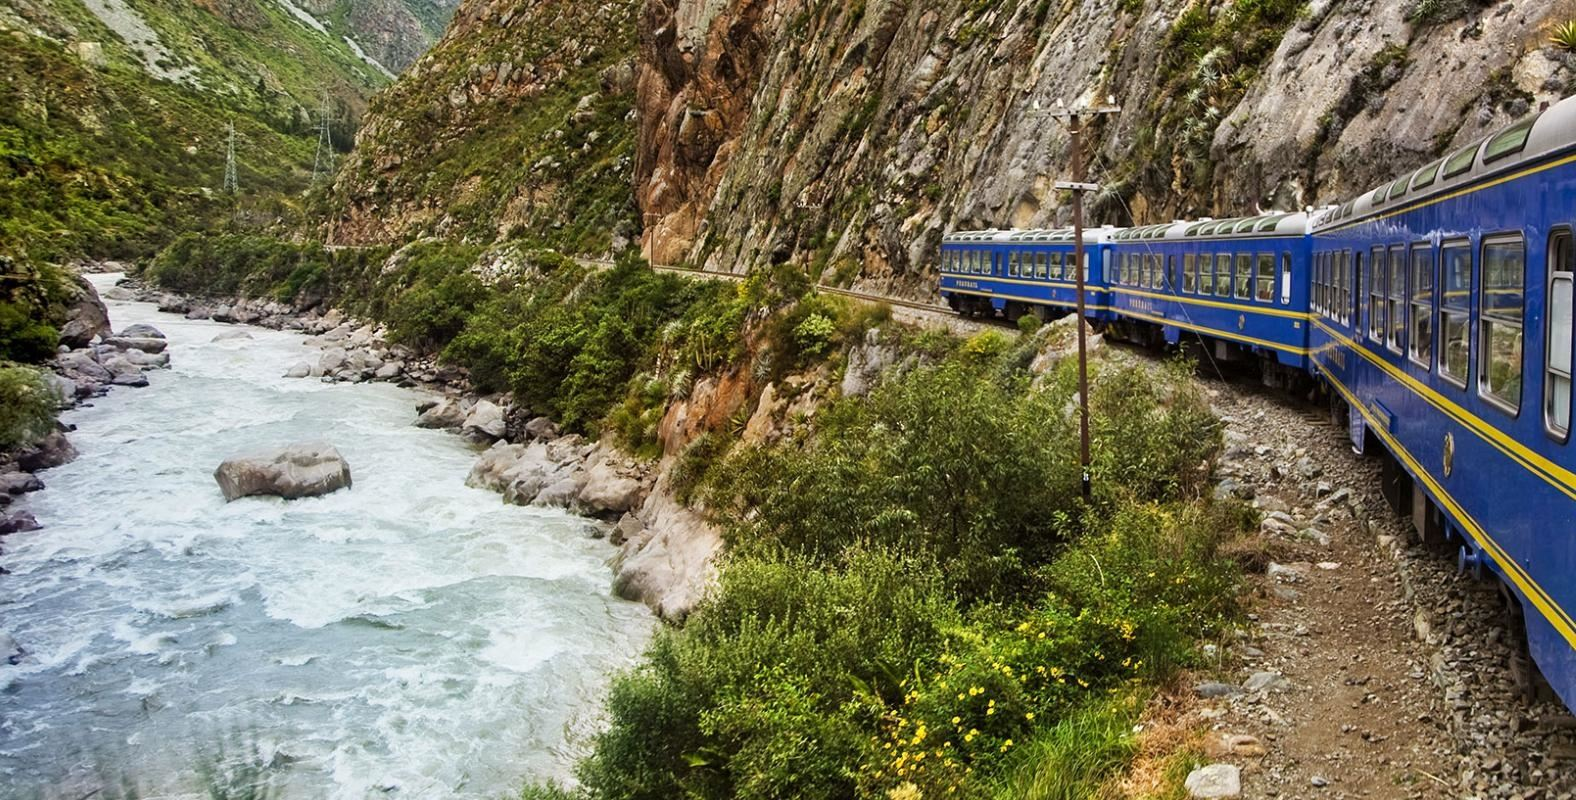 Machu Picchu Luxury Tour - Train Hiram Bingham